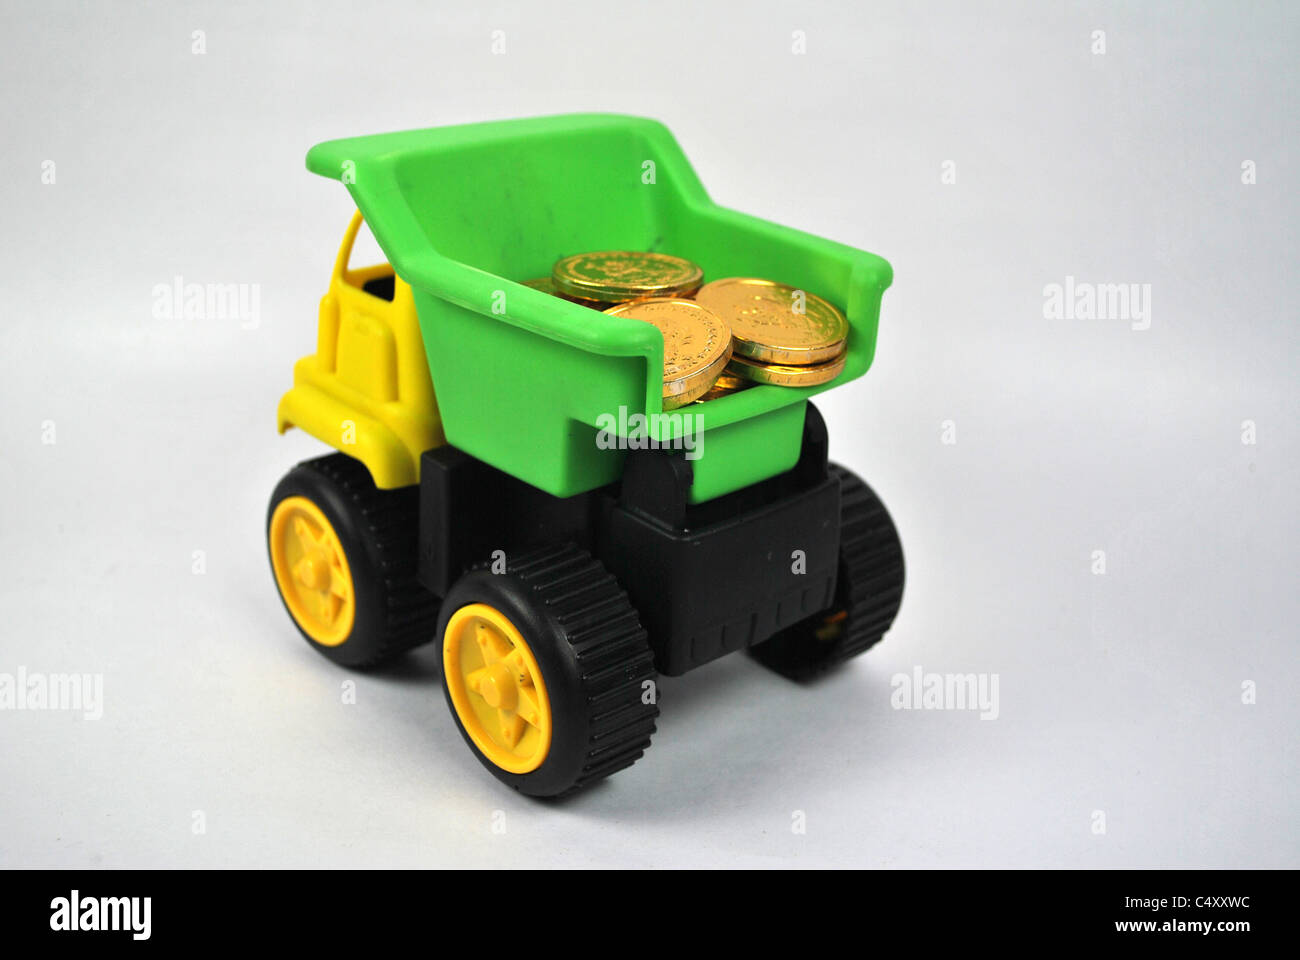 toy playful truck lorry mobile auto wealth money gold coin silo cut out cut-out white back ground isolated yellow - Stock Image